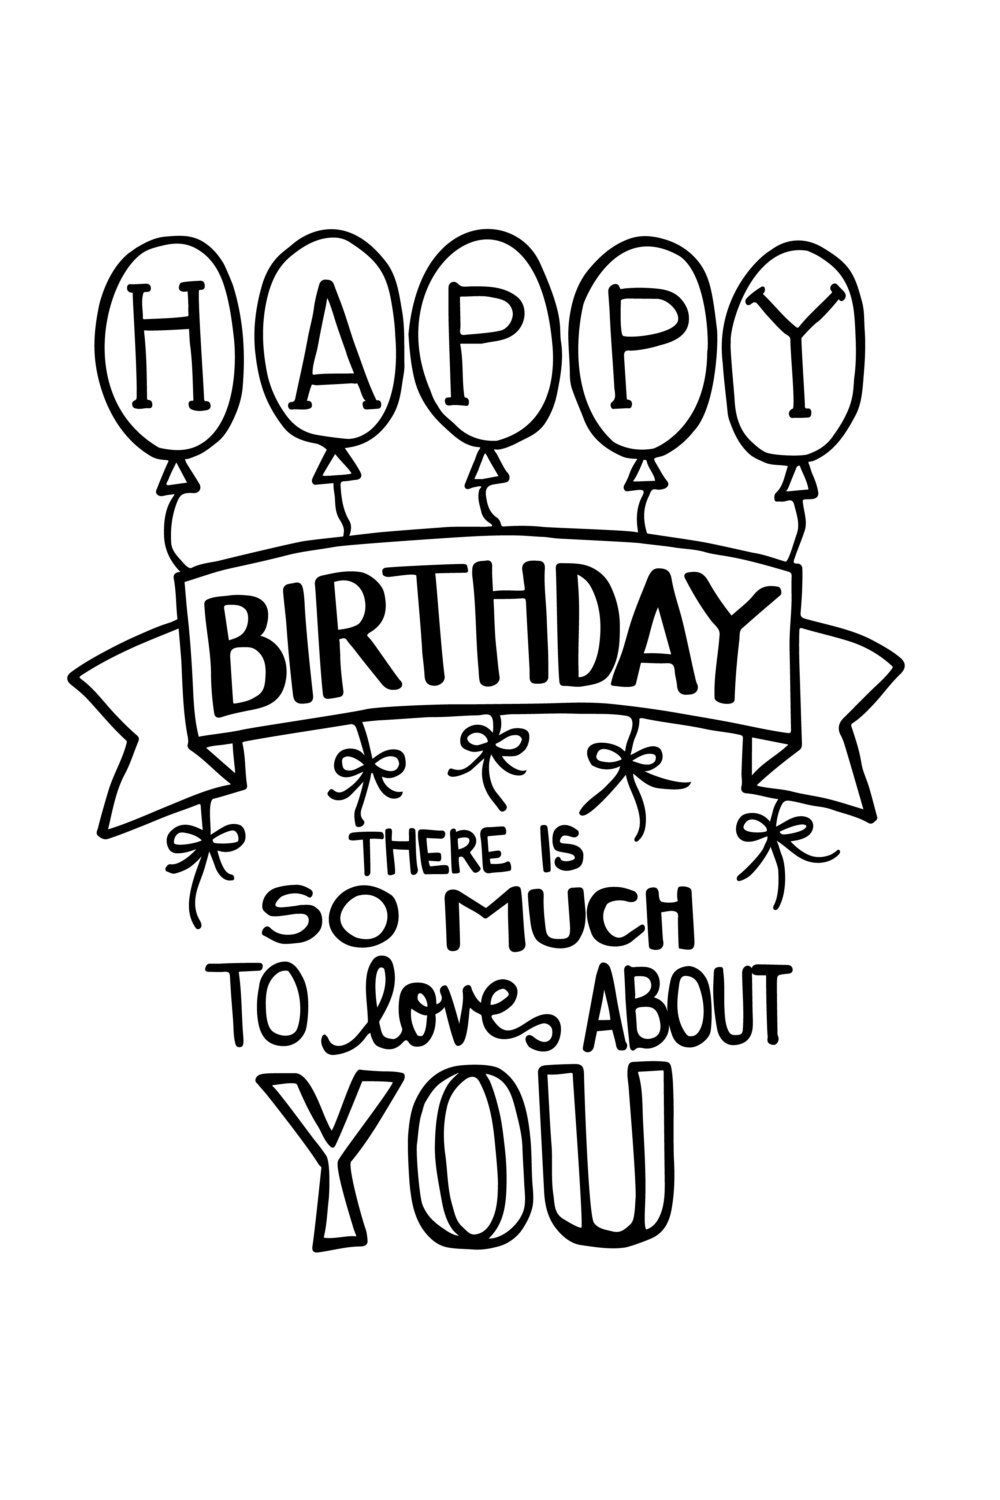 Instant Digital Download Happy Birthday Poster Happy Birthday Doodles Birthday Poster Diy Happy Birthday Drawings